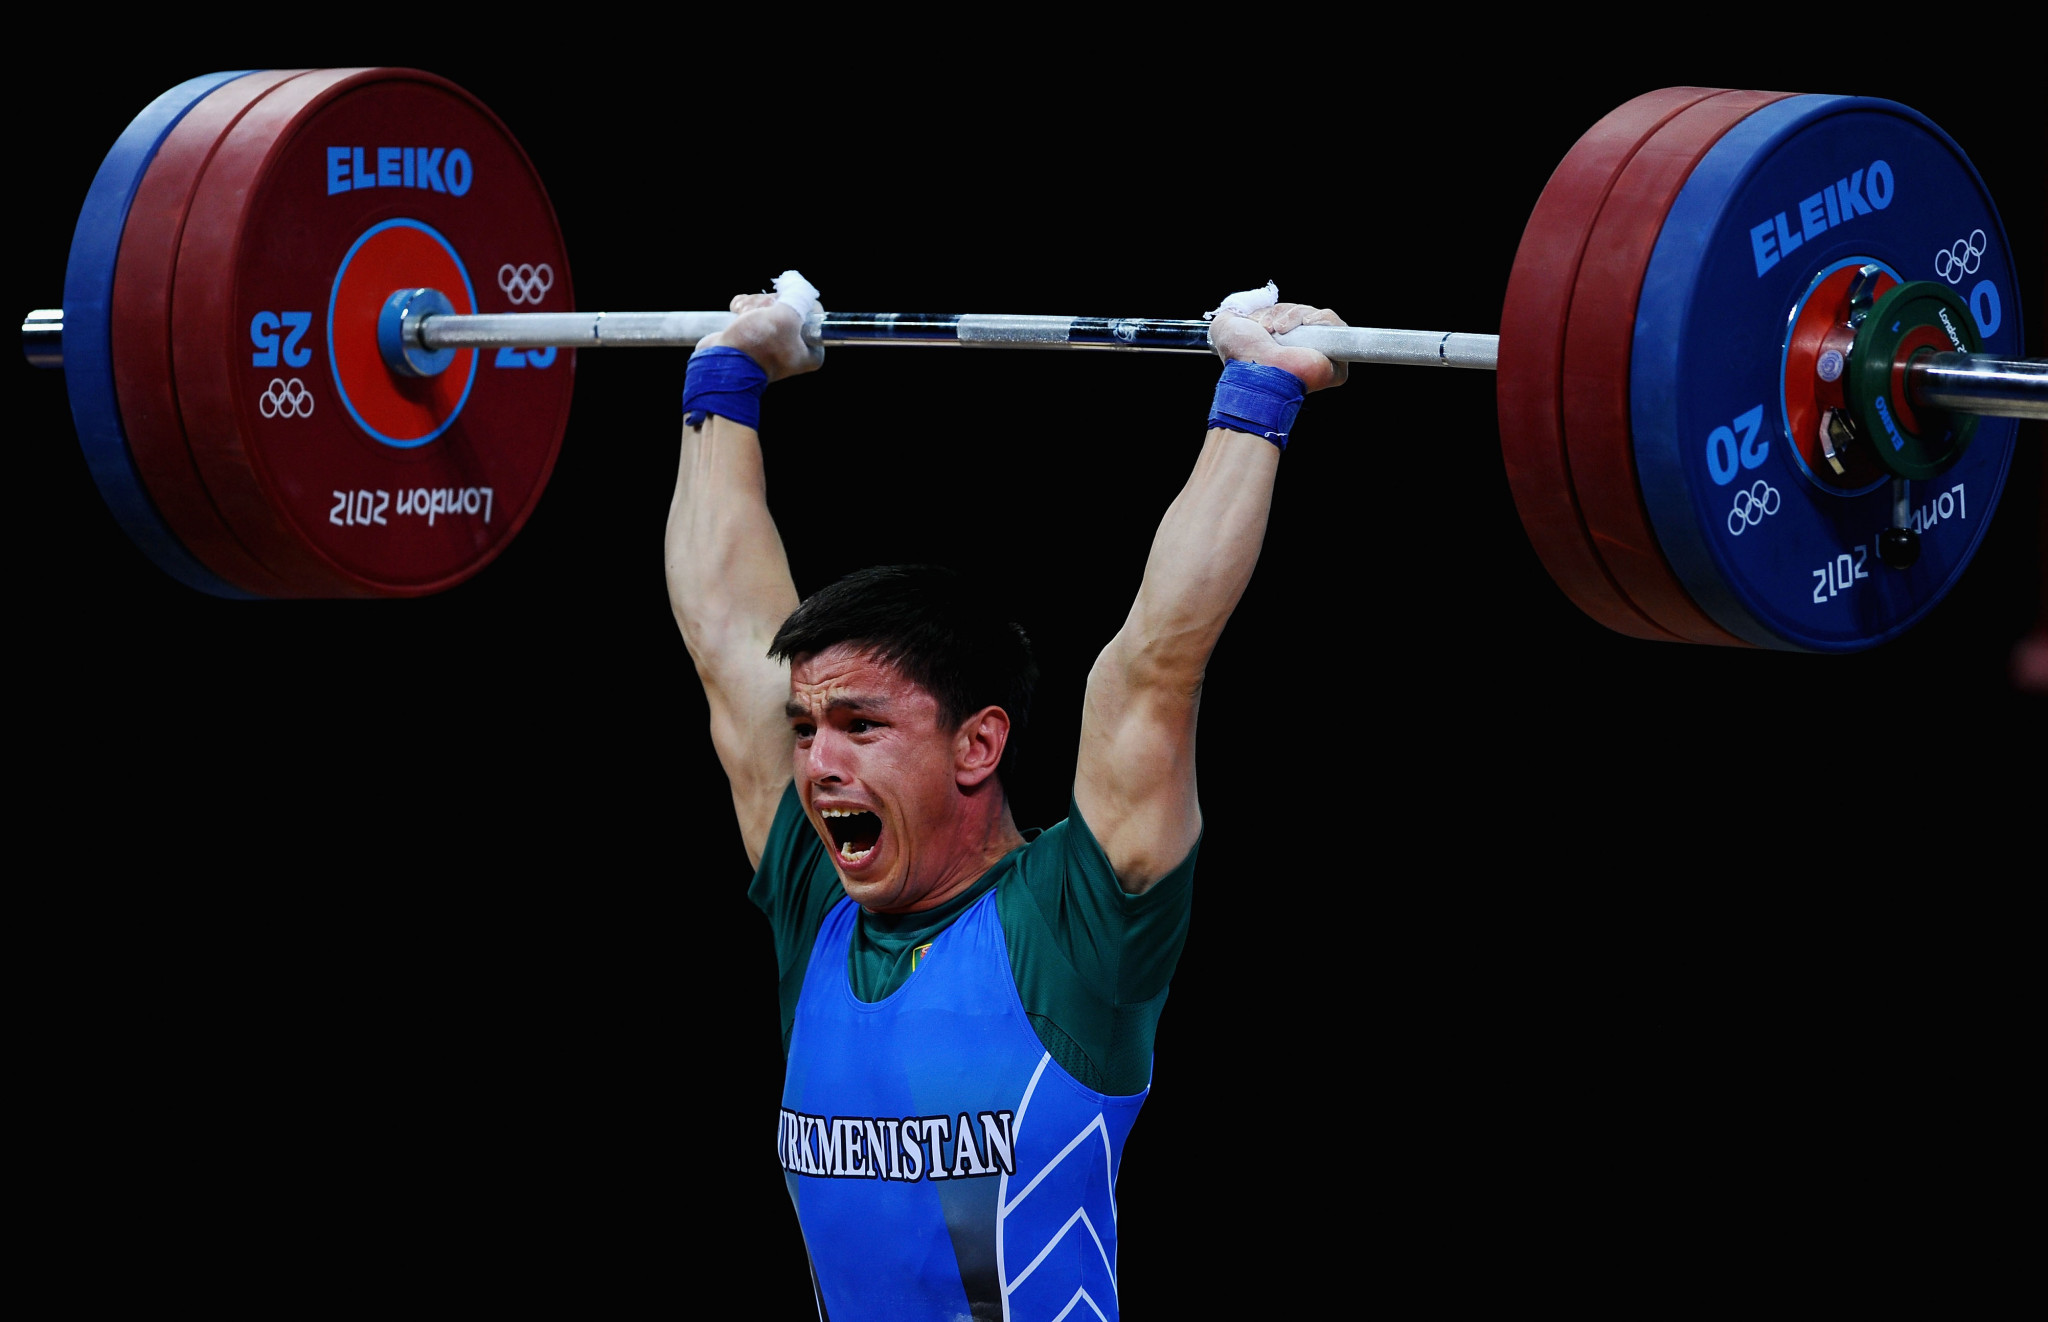 Hosts Turkmenistan hired suspended doper to coach weightlifting World Championships team